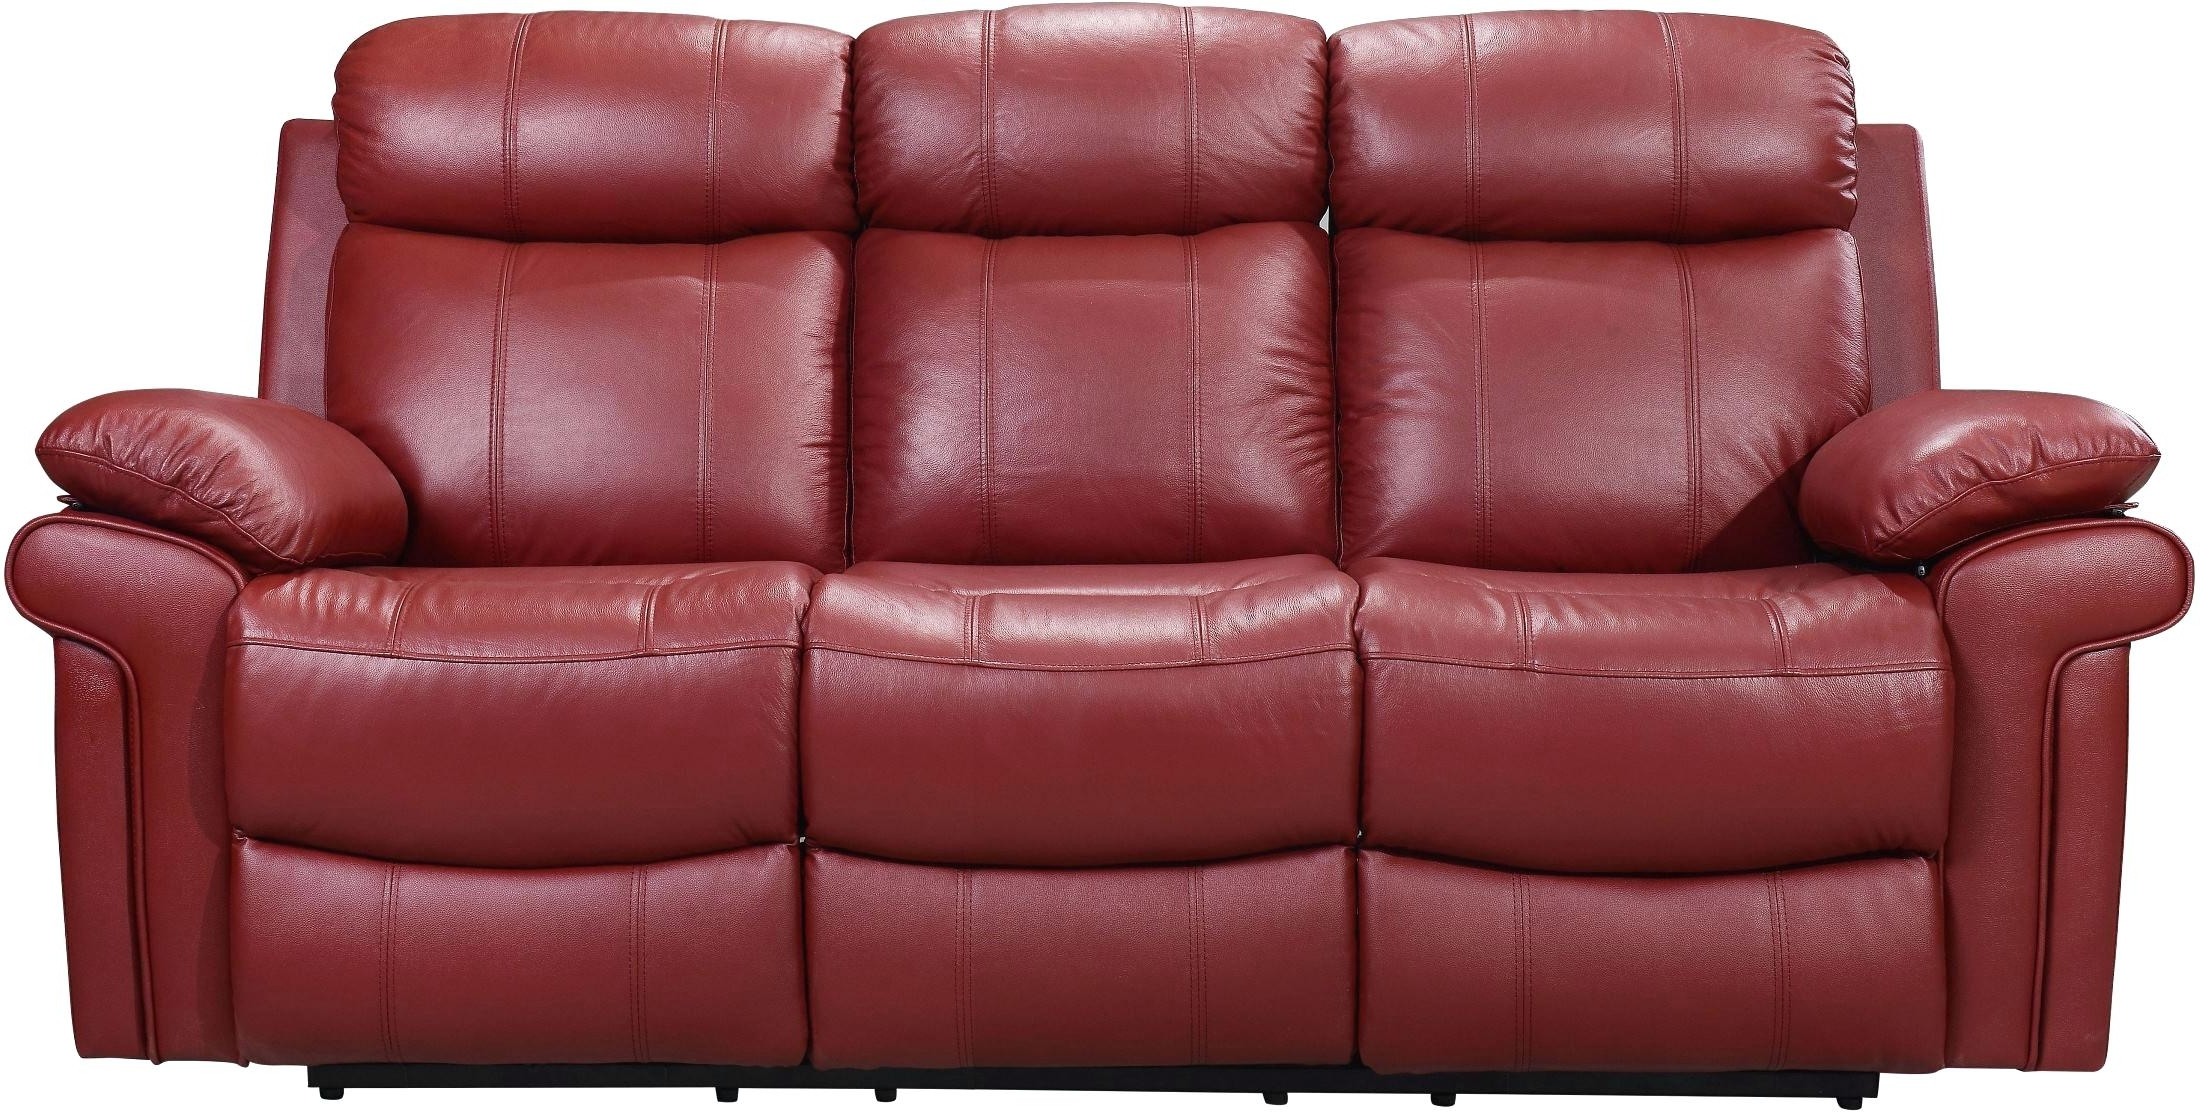 Preferred Red Leather Recliner Red Faux Leather Reclining Sofa Red Leather Intended For Red Leather Reclining Sofas And Loveseats (View 15 of 15)